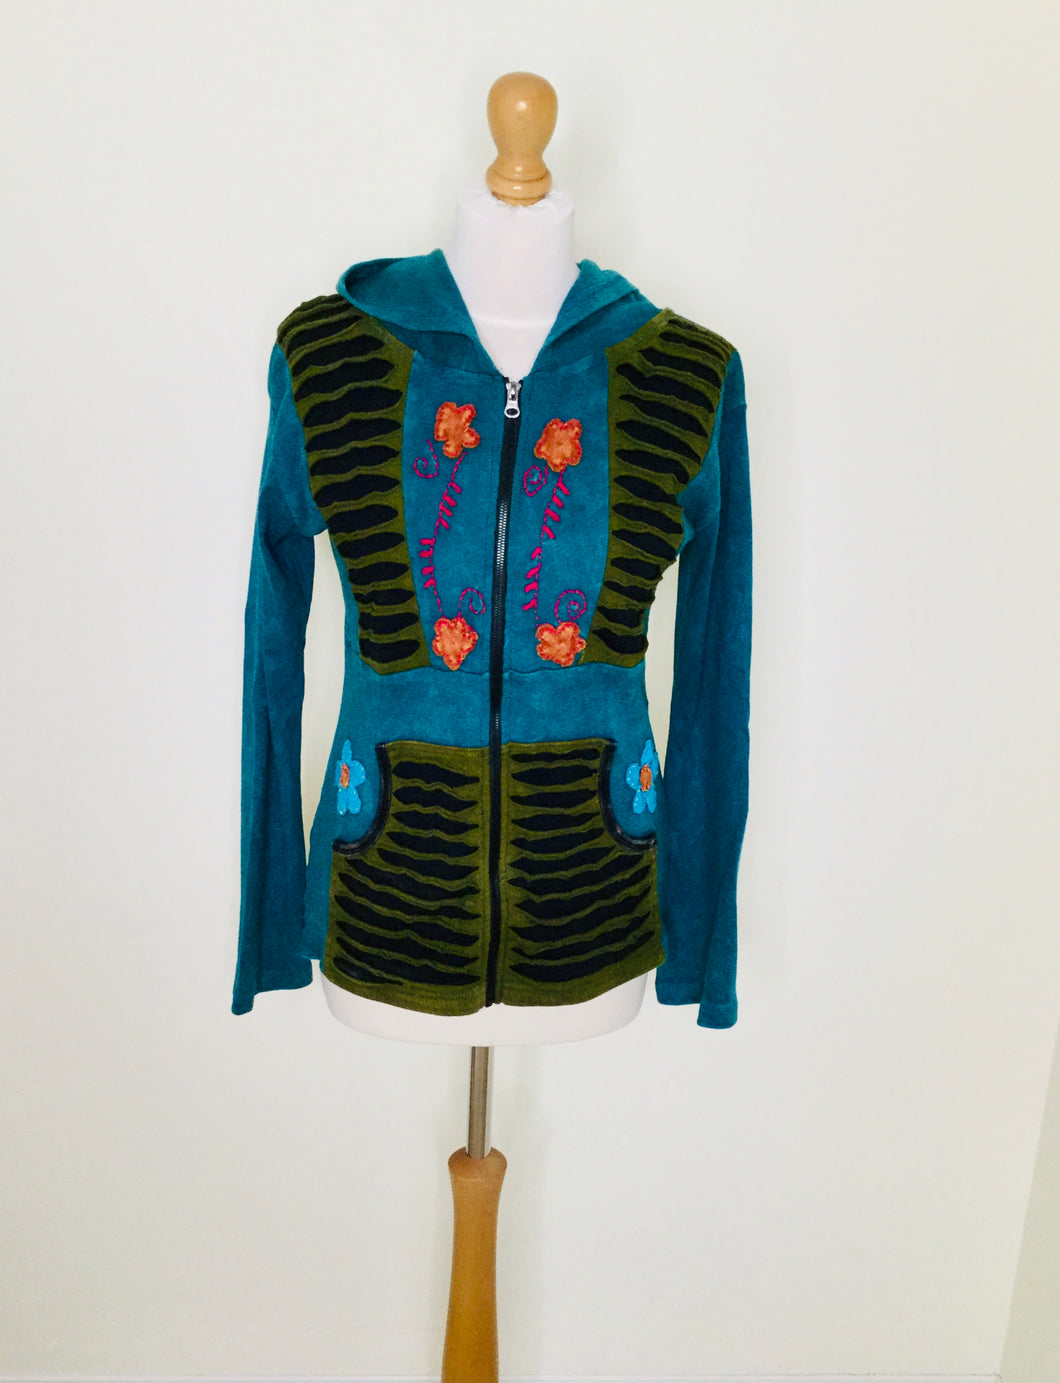 Vintage teal hooded zip front top with floral appliqué